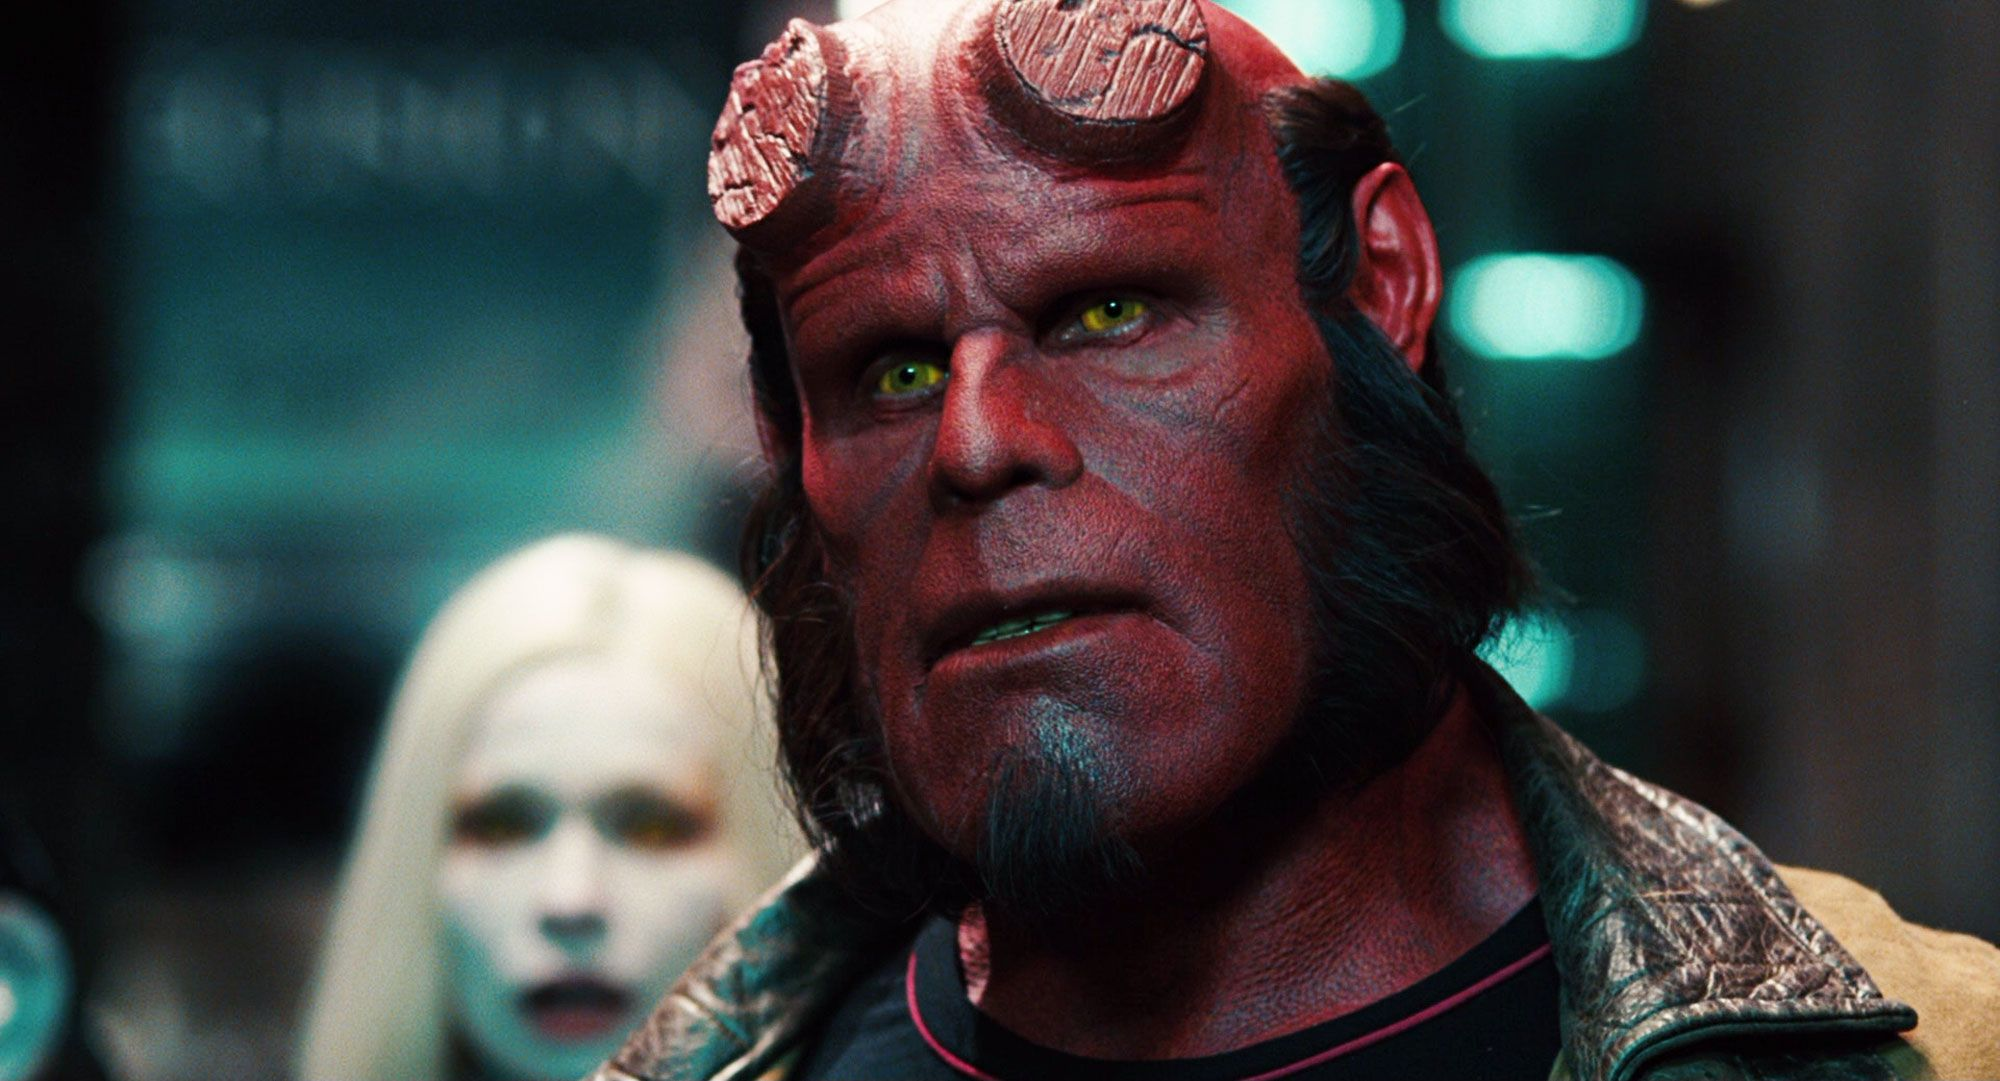 Hellboy star Ron Perlman turned down cameo appearance in reboot